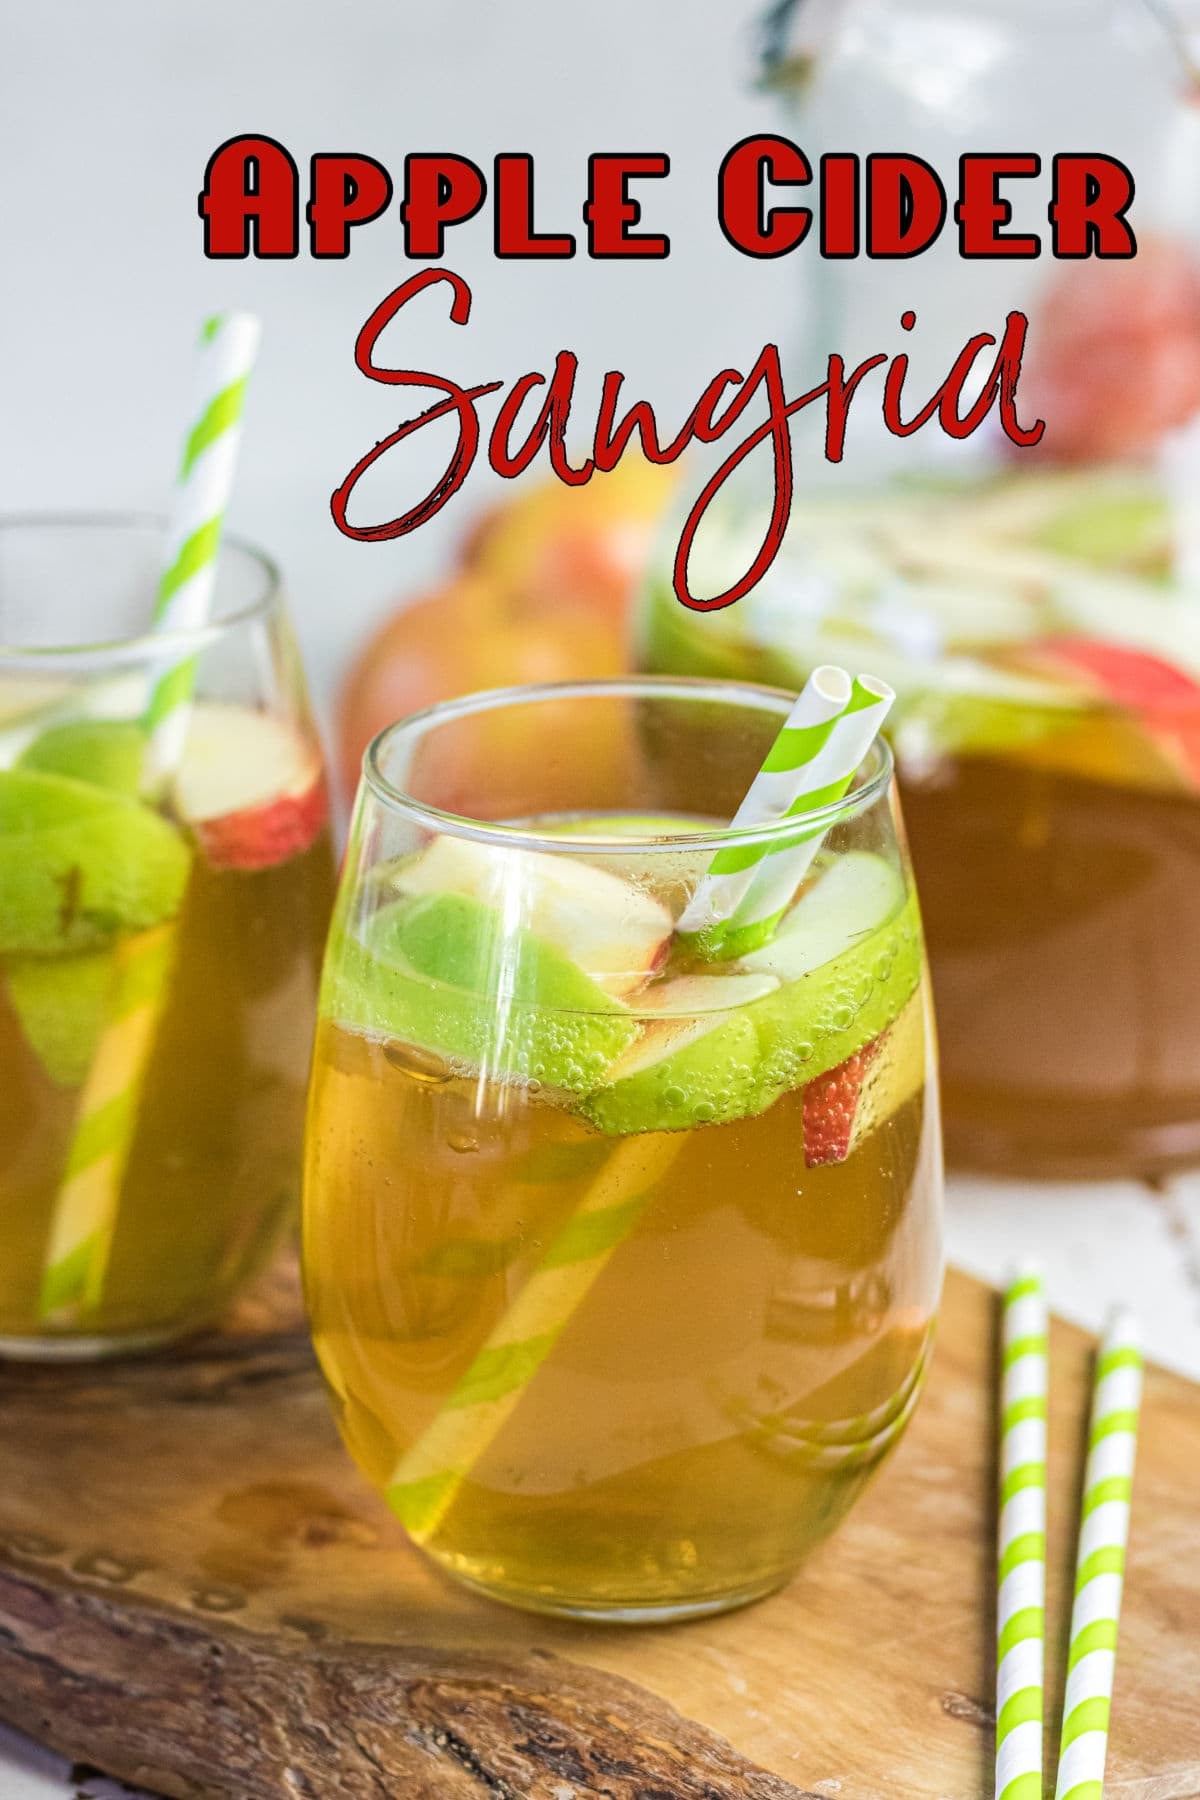 Close up of a glass of the sangria with apples floating in it. Title text overlay.